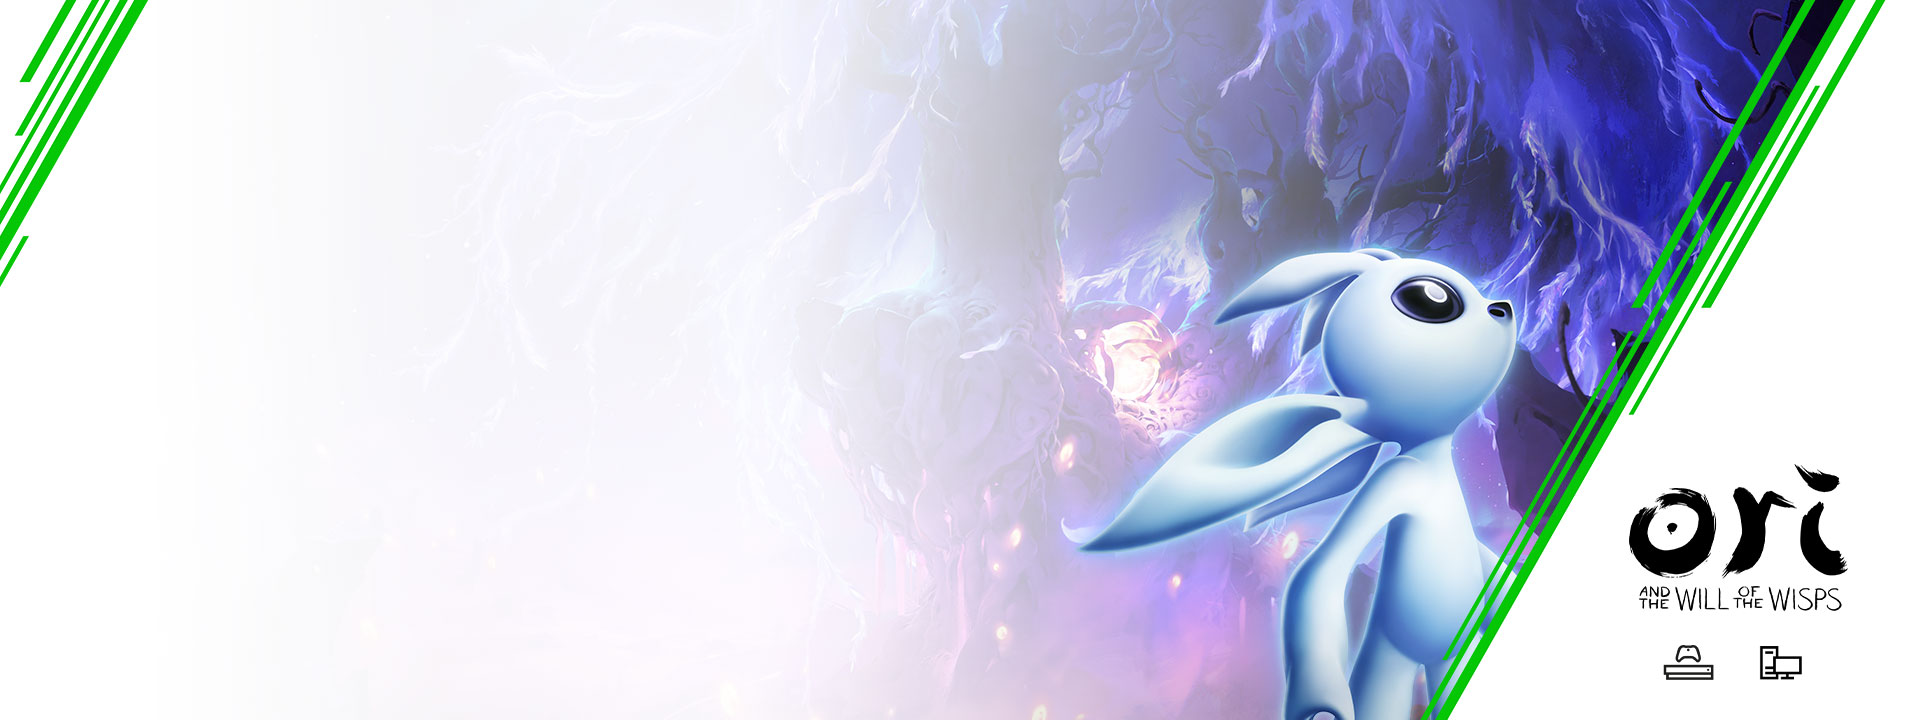 Ori z hry Ori a Will of the Wisps so stromom v pozadí. Logo Xbox Game Pass, Xbox One a PC.